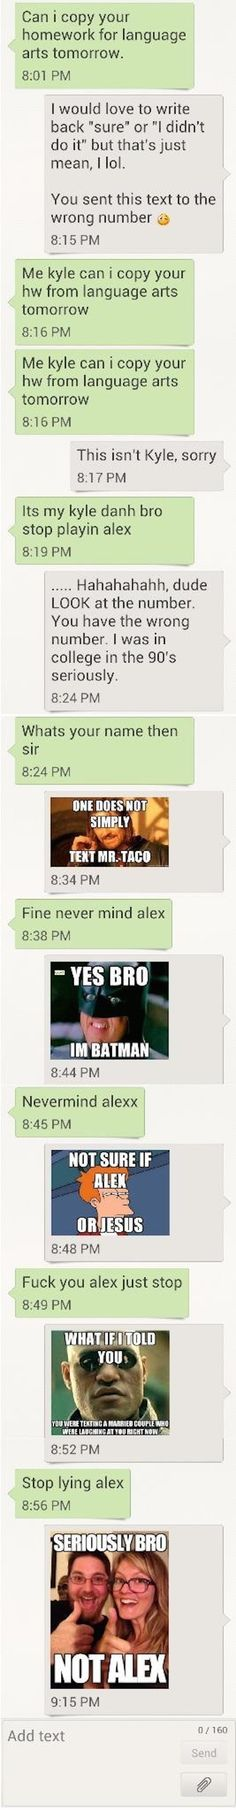 15 of the most creative text message responses to wrong numbers. | Wrong Number Texts | Someecards